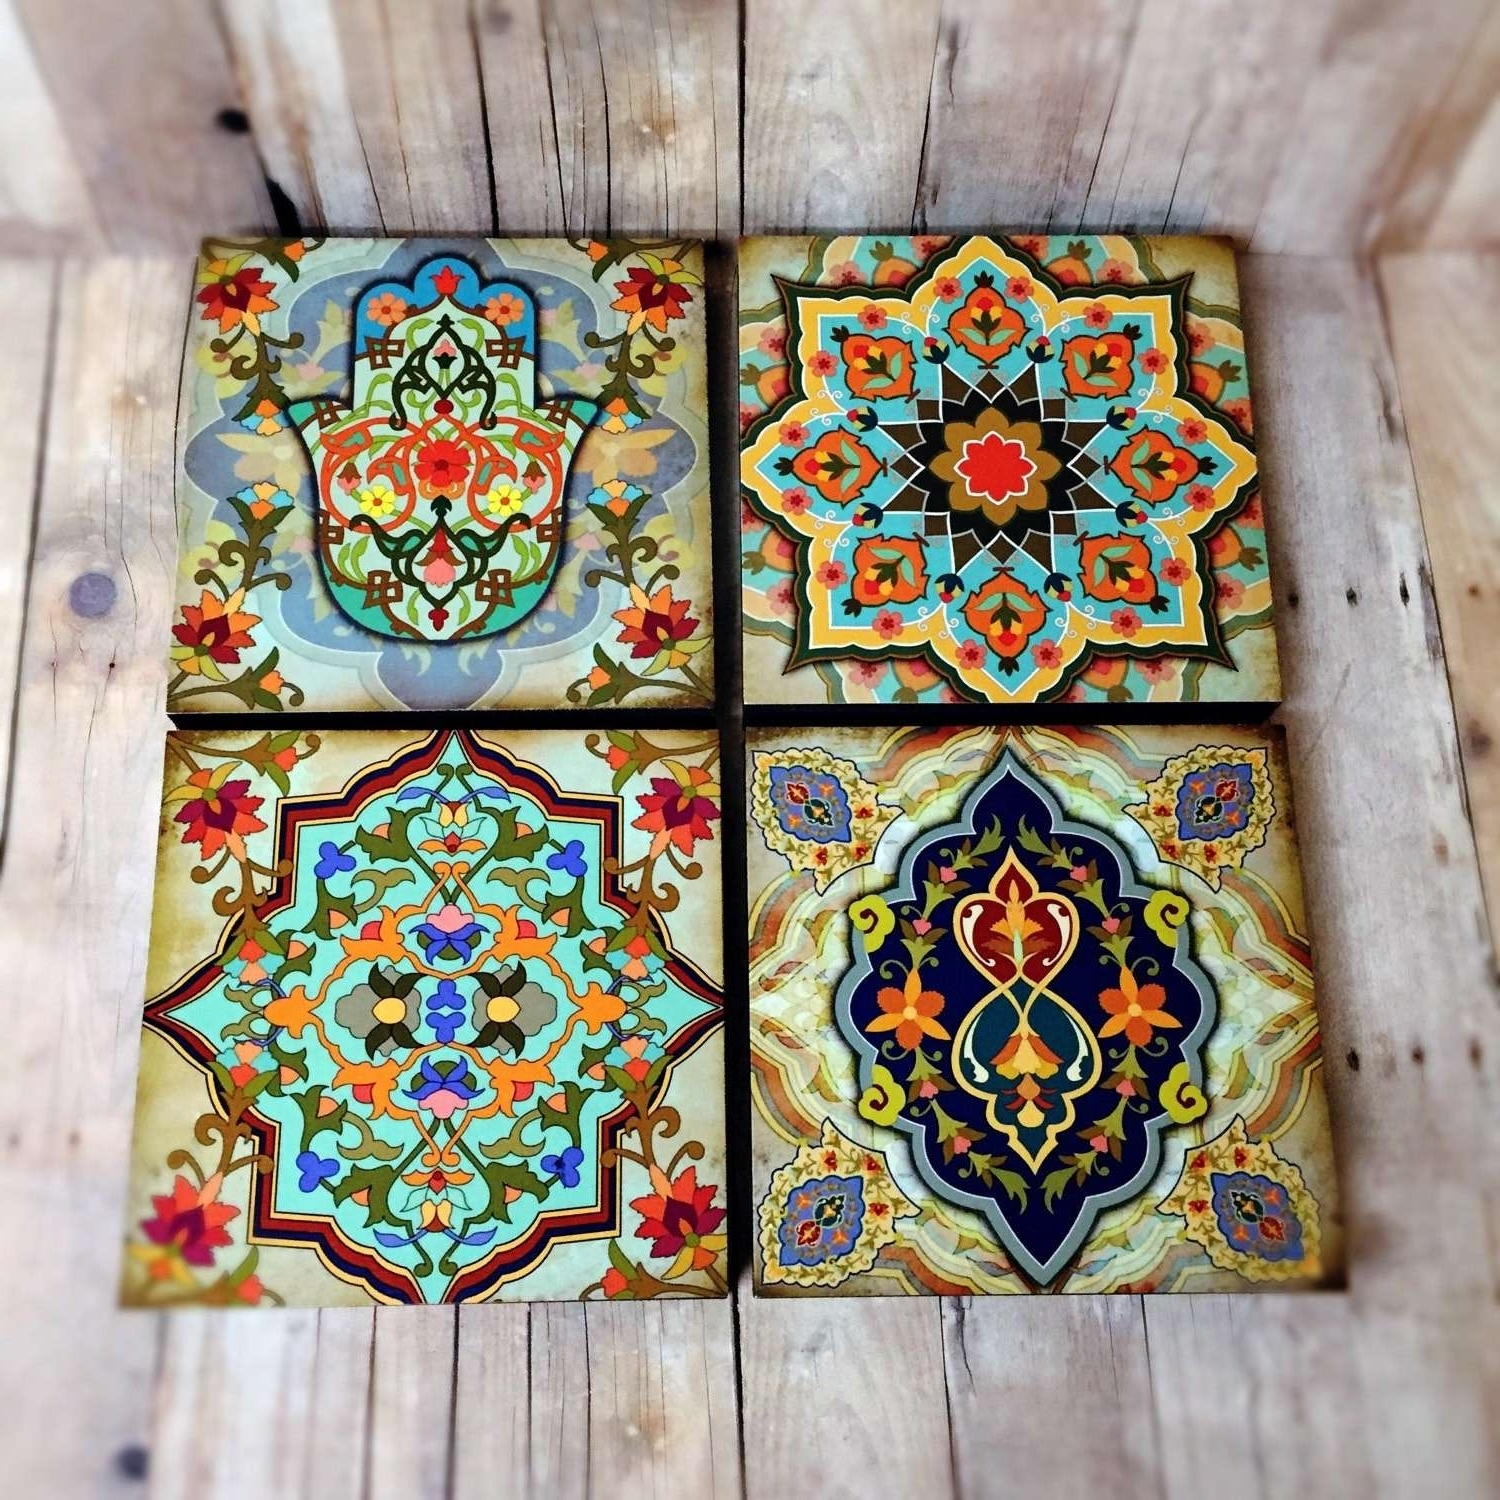 Moroccan Vintage Moroccan Wall Art – Wall Decoration And Wall Art Ideas Throughout Most Up To Date Moroccan Wall Art (View 3 of 15)